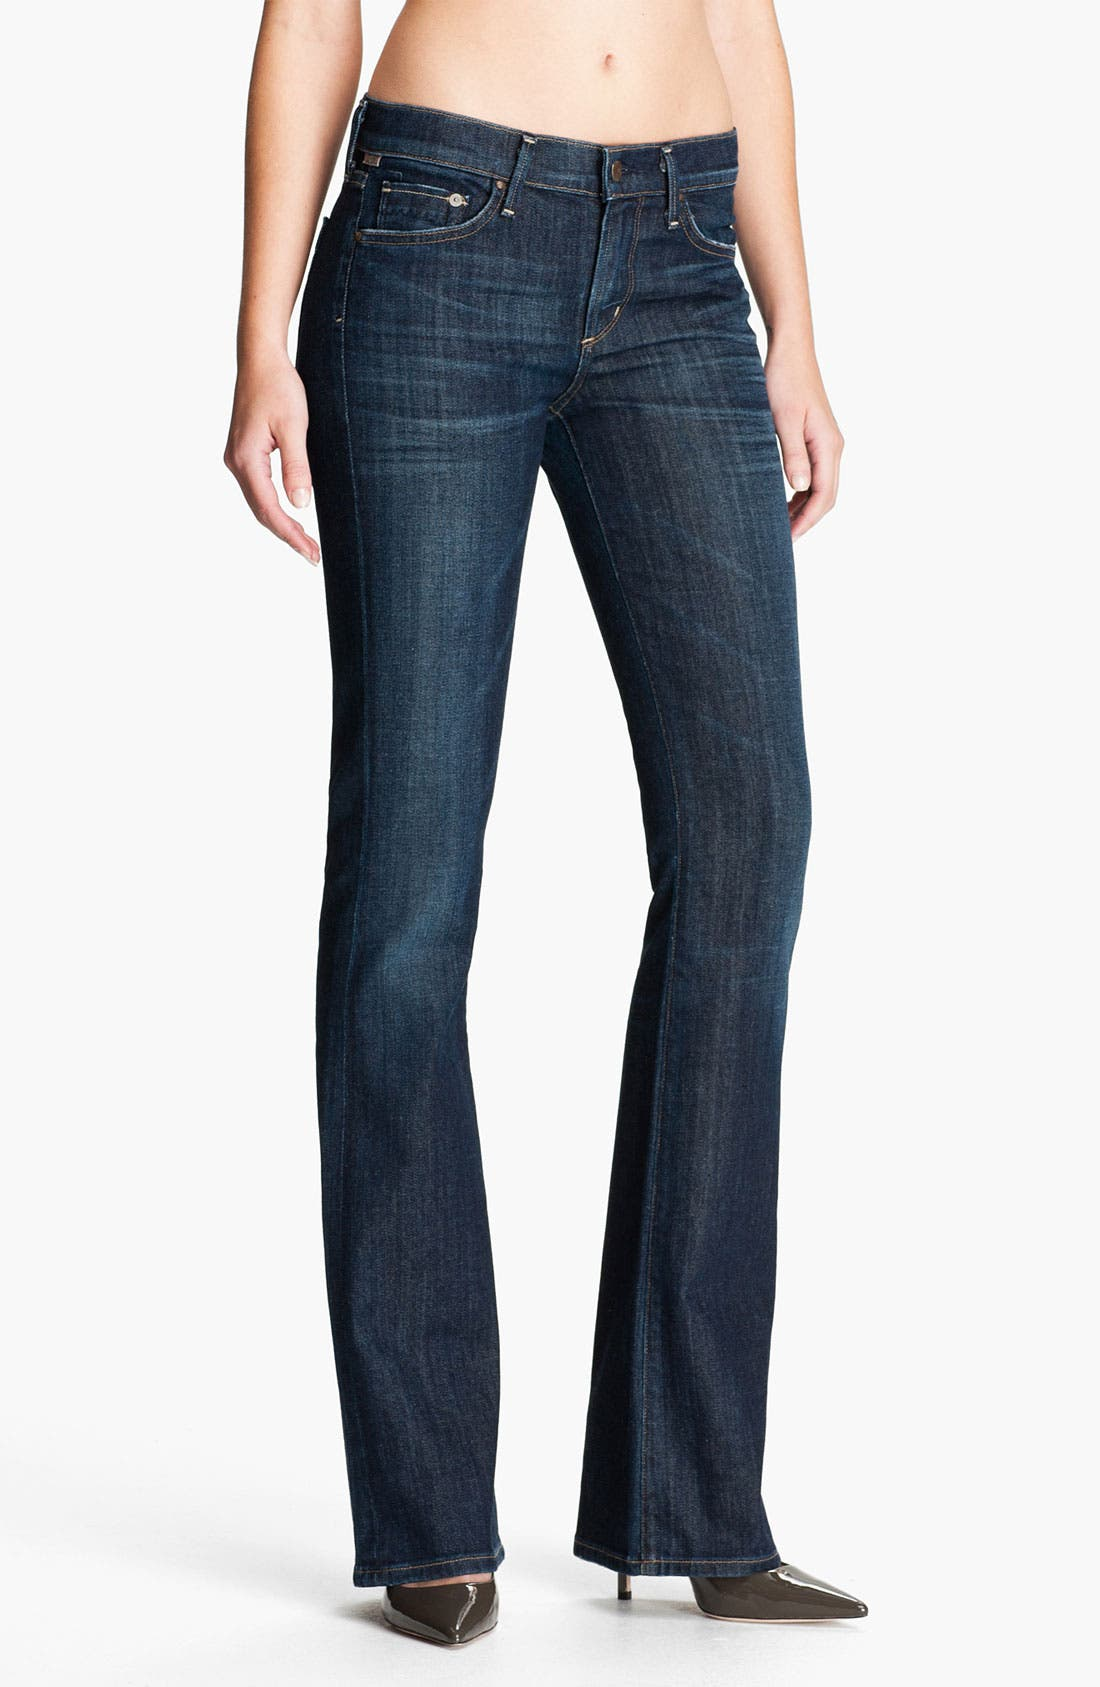 Alternate Image 1 Selected - Citizens of Humanity 'Amber' Bootcut Jeans (Galaxy)